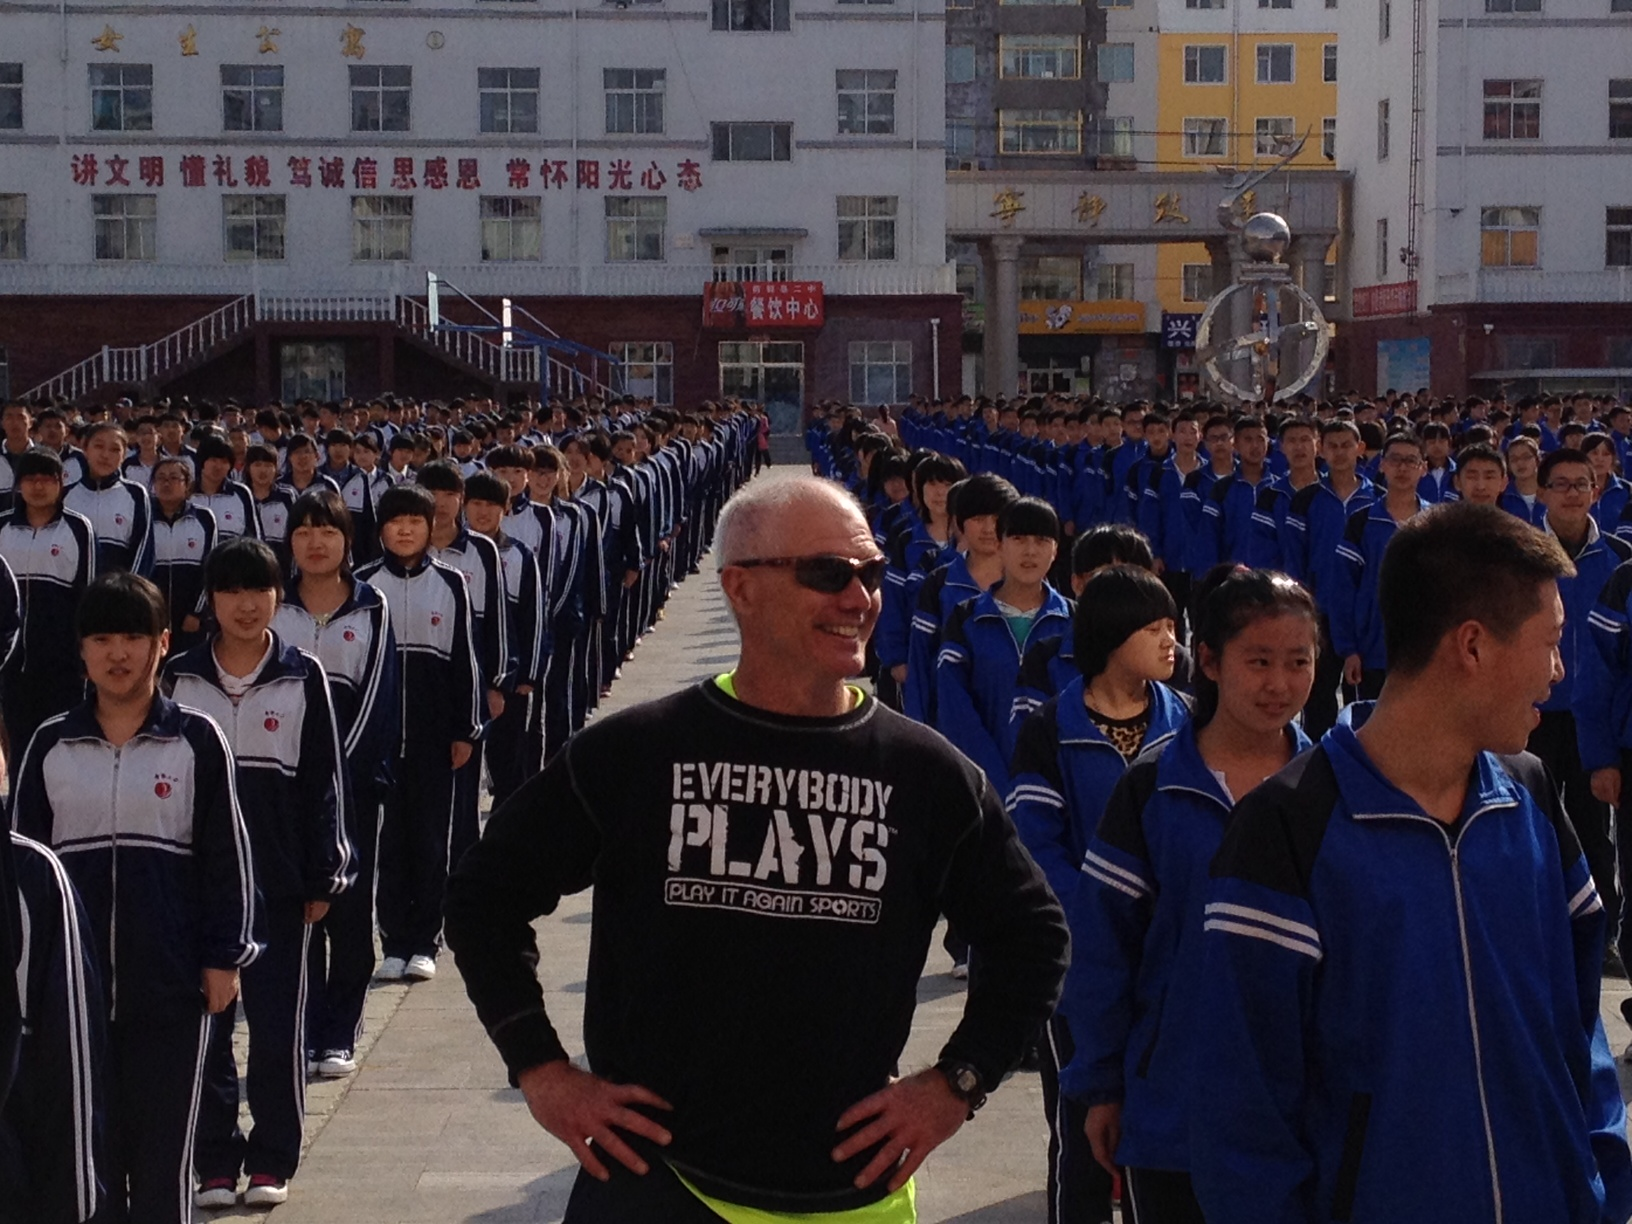 An American participant leads the Chinese youth in some exercise activities.